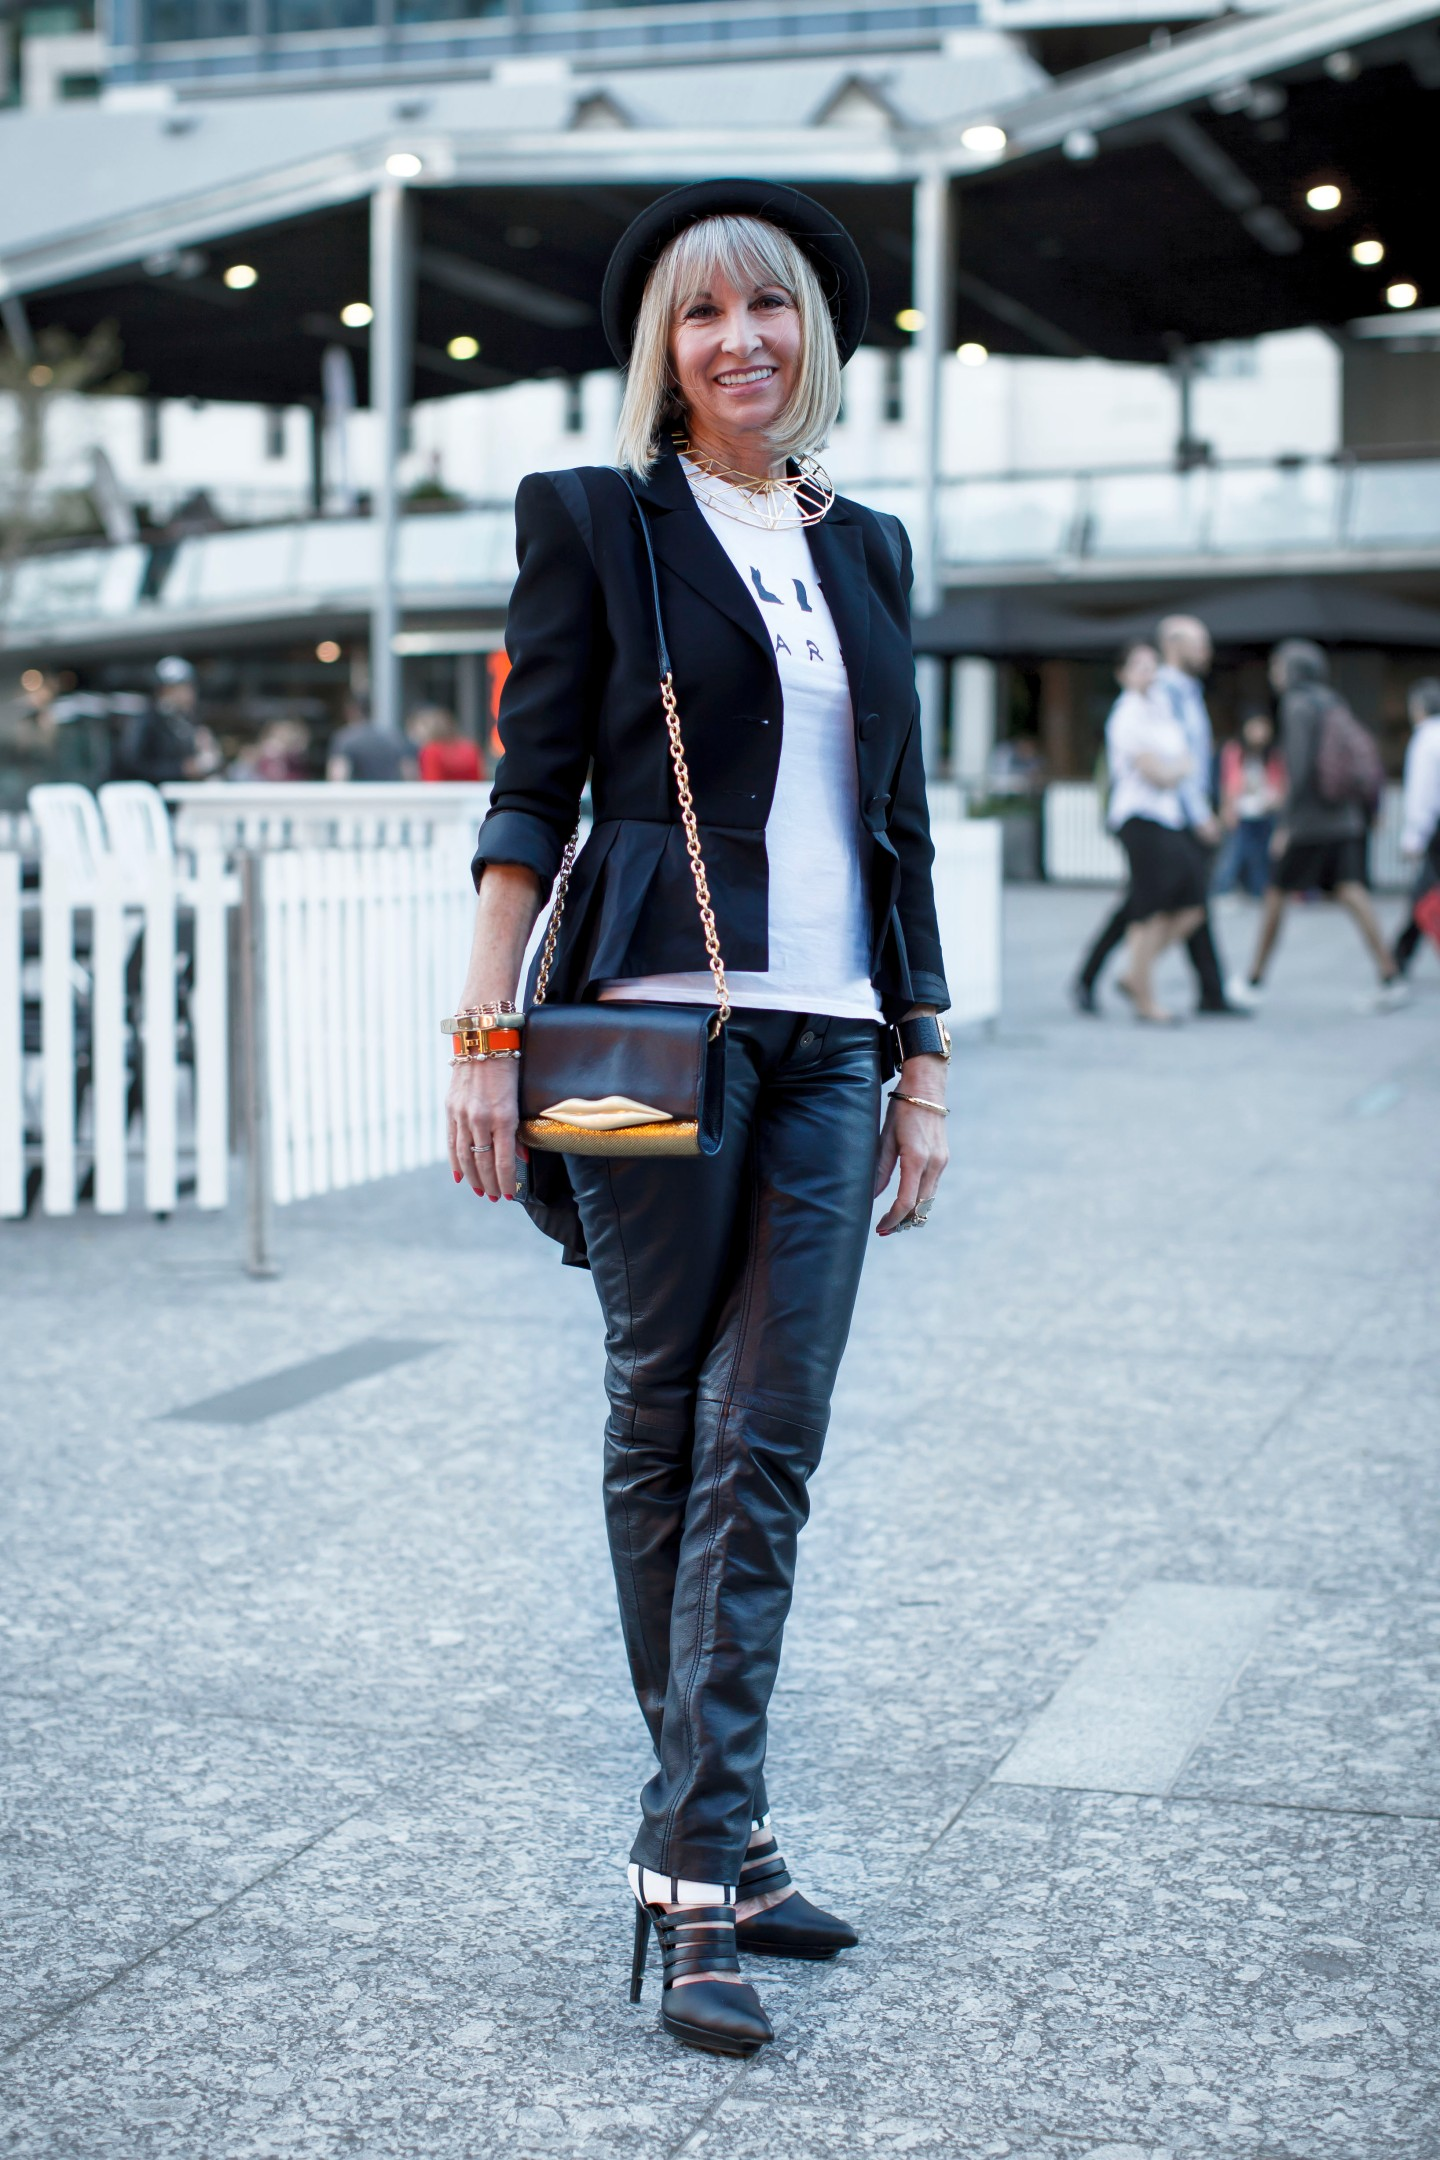 Leather pants, peplum jacket, t-shirt, pointy toe heels, bowler hat, Hermes bangle, shoulder bag, your ensemble, yourensemble, yourensemble.com